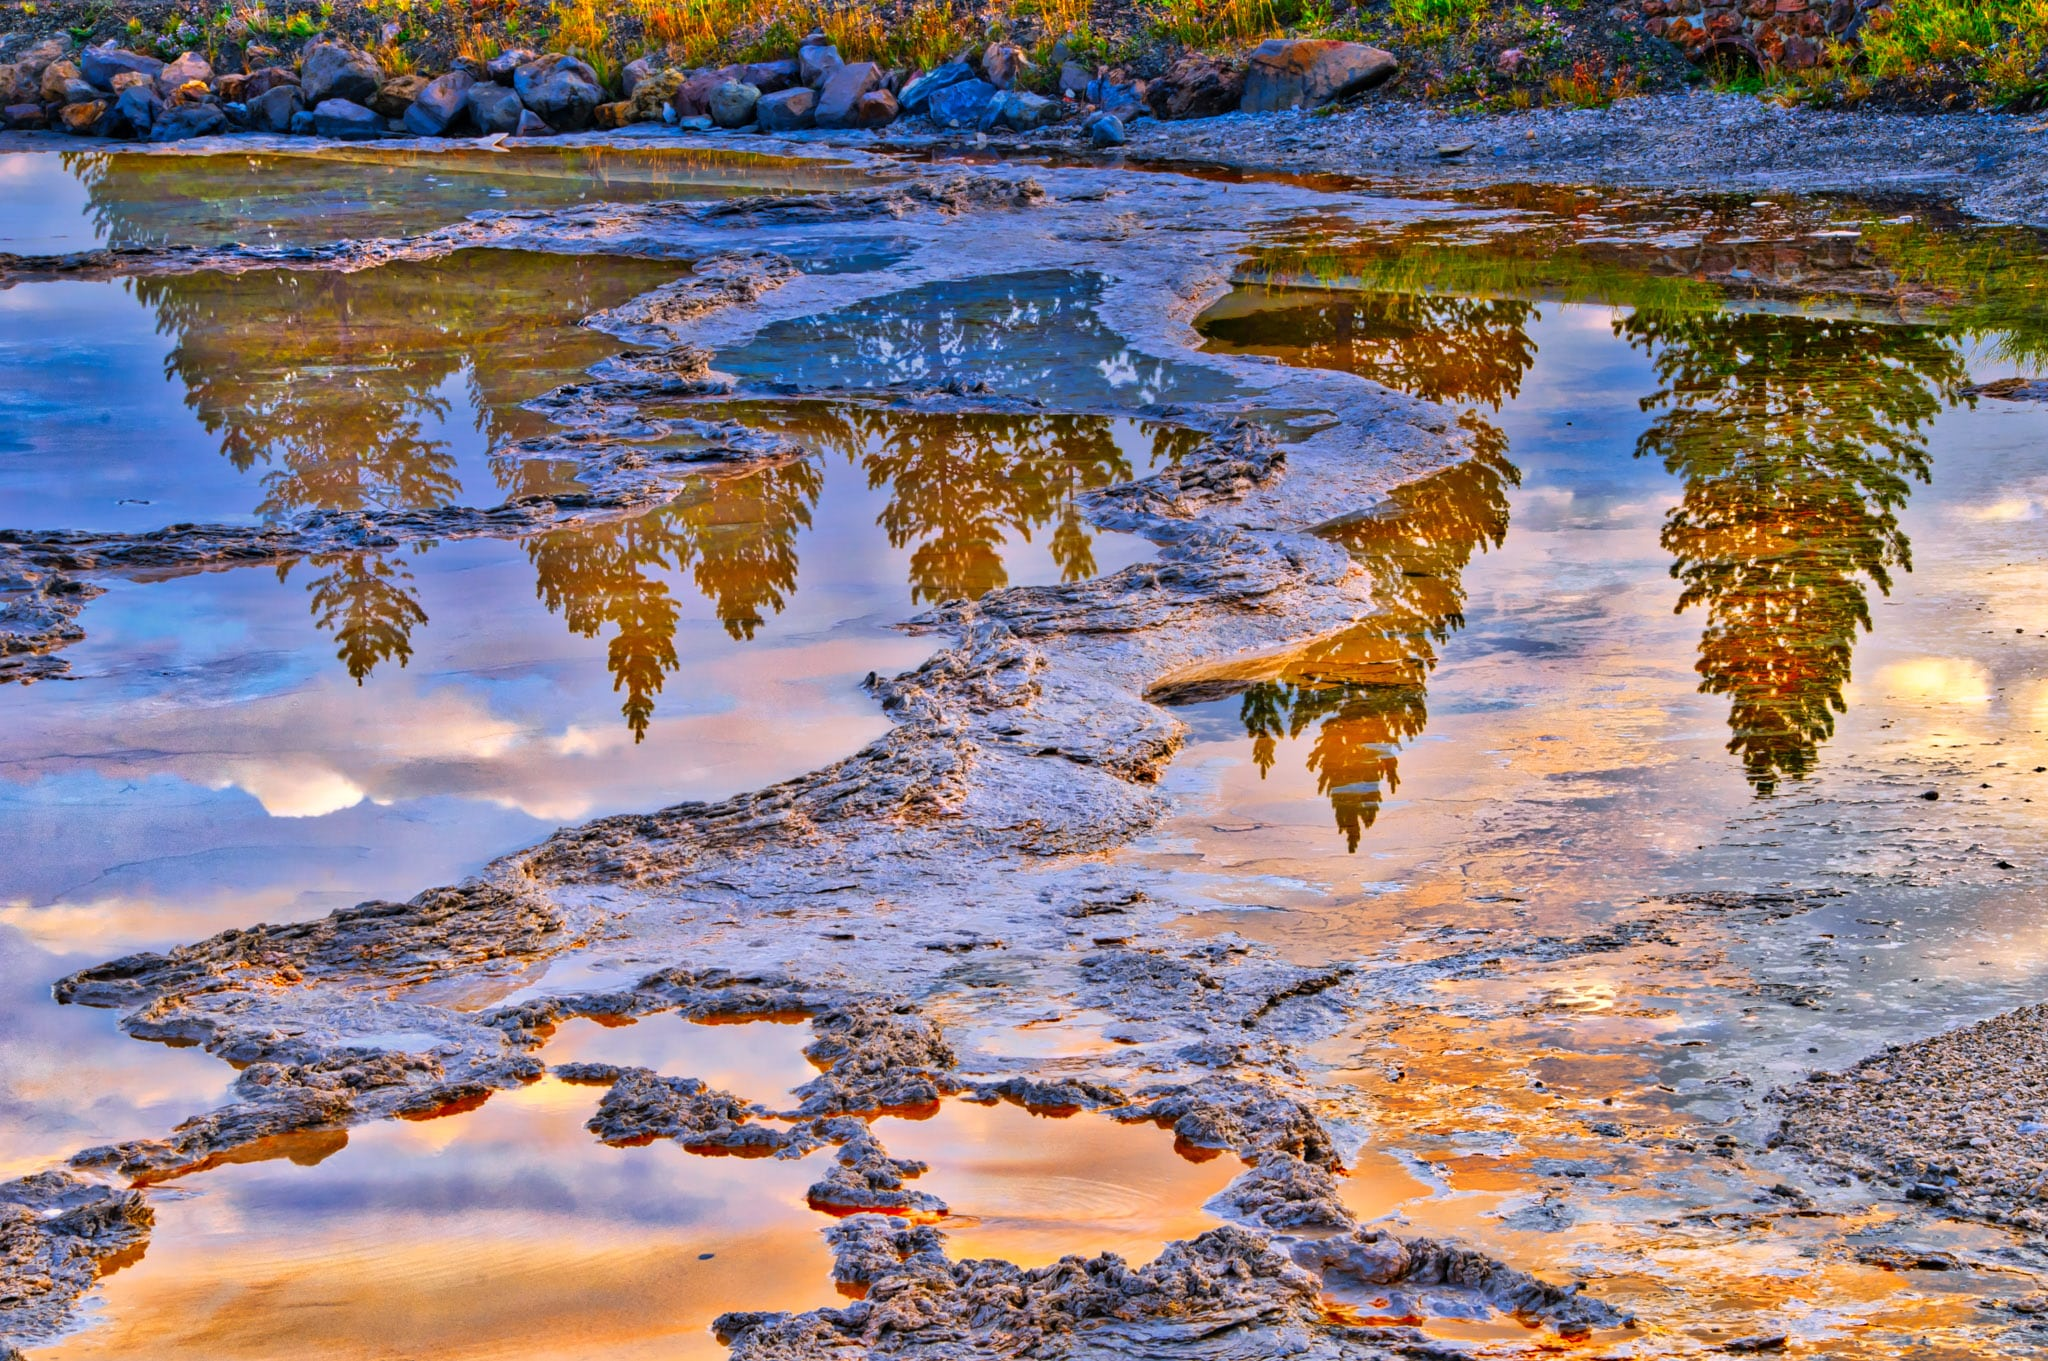 Trees reflected in Fountain Geyser at Sunrise in Yellowstone National Park, Wyoming.